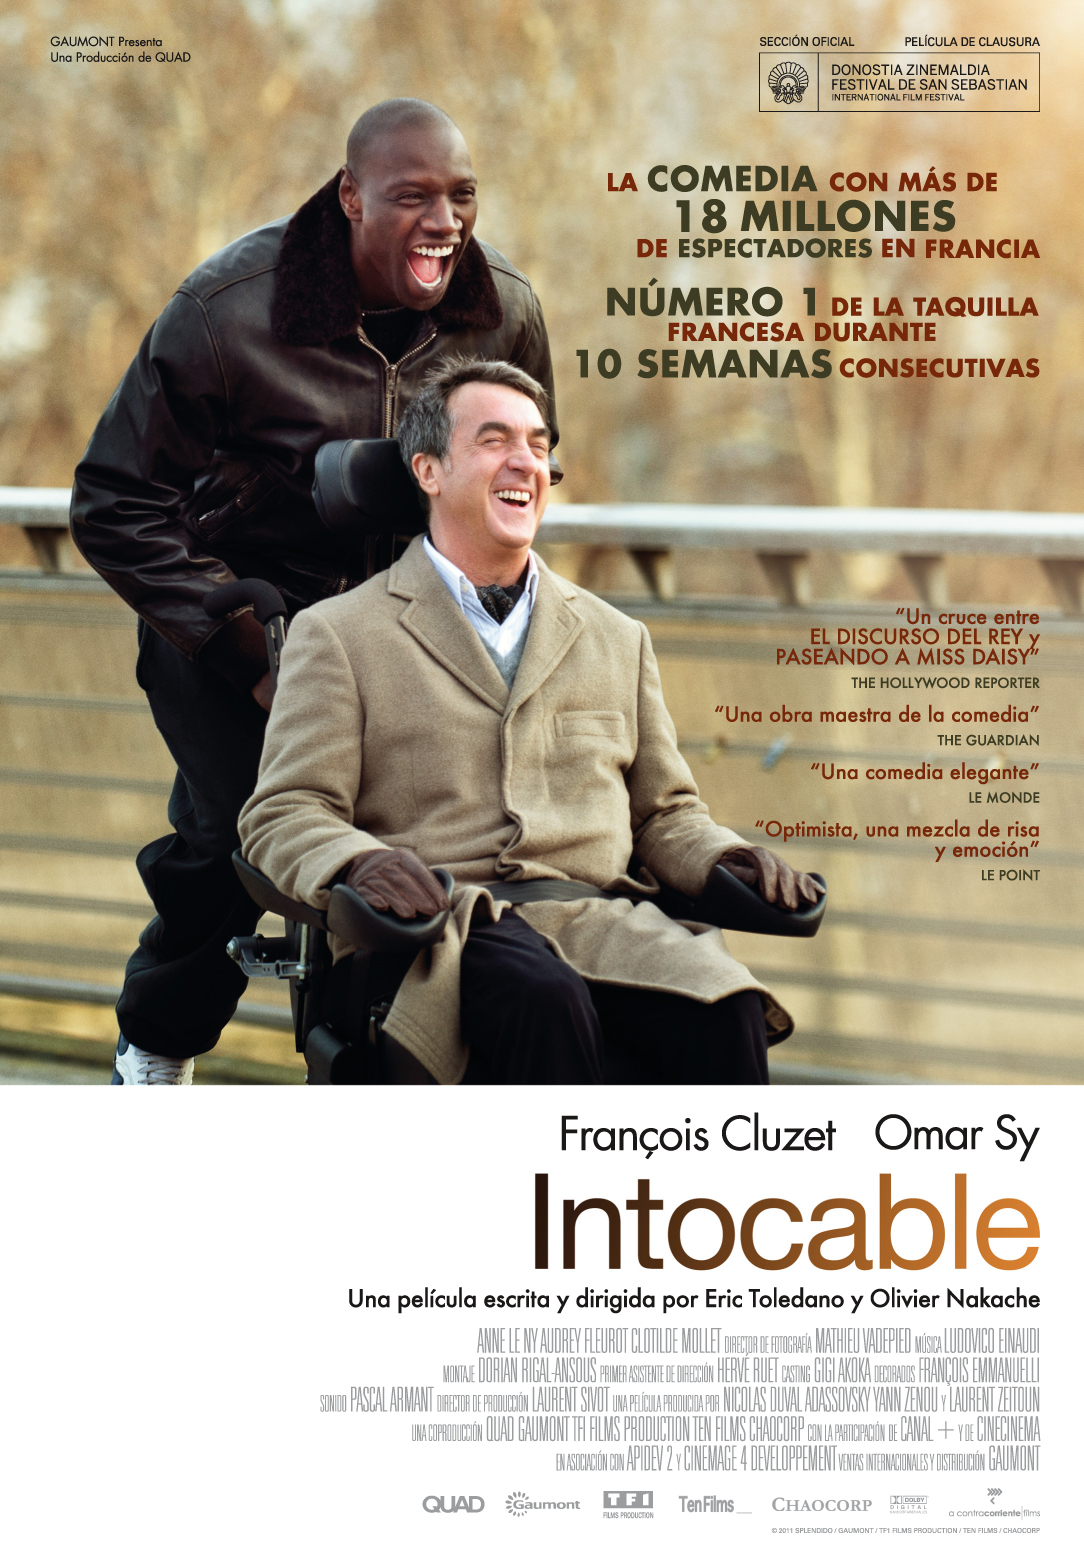 http://3.bp.blogspot.com/-Ud9KYqOCZDY/UMqUEDkCiKI/AAAAAAAAVpE/Rpy3XsnzK-g/s1600/intocable-poster.jpg